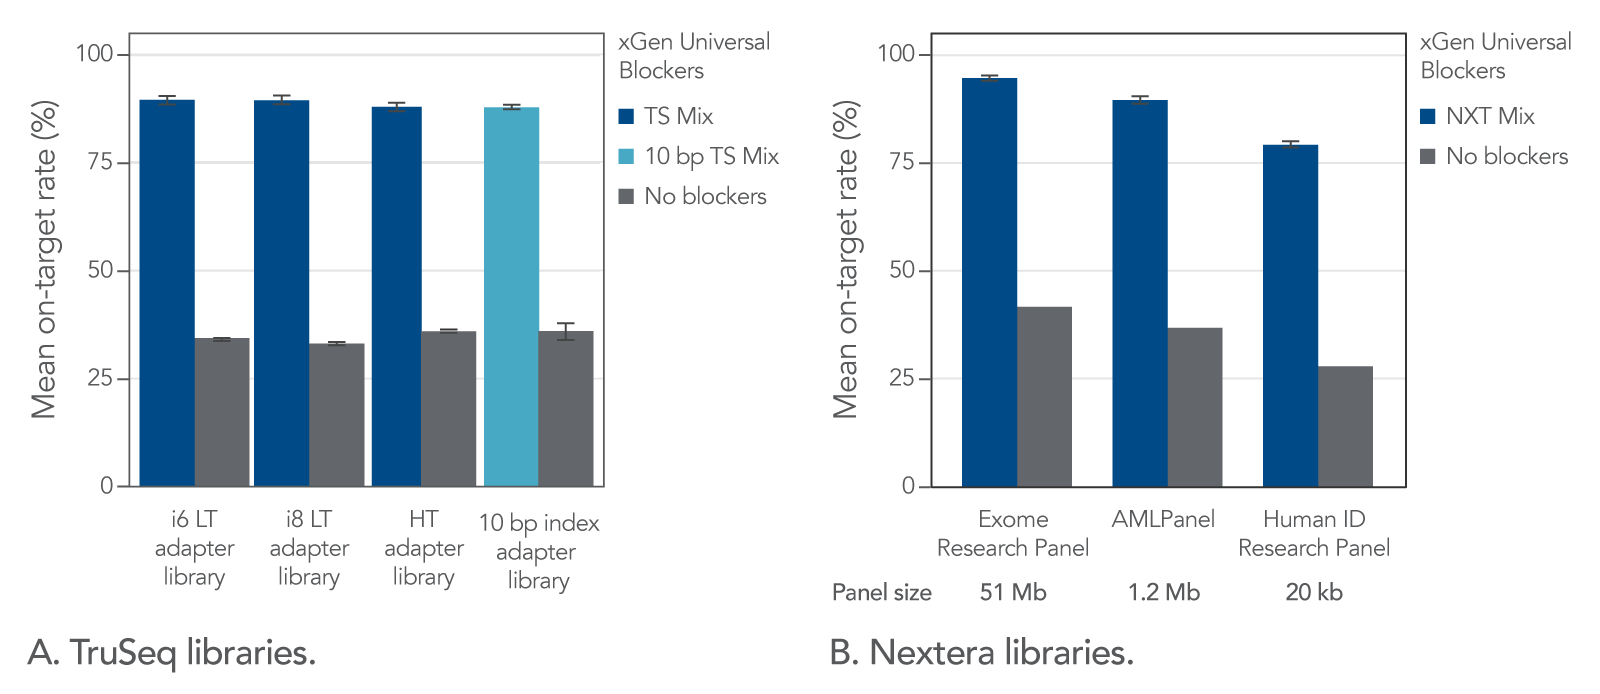 xGen Universal Blockers_high on target performance